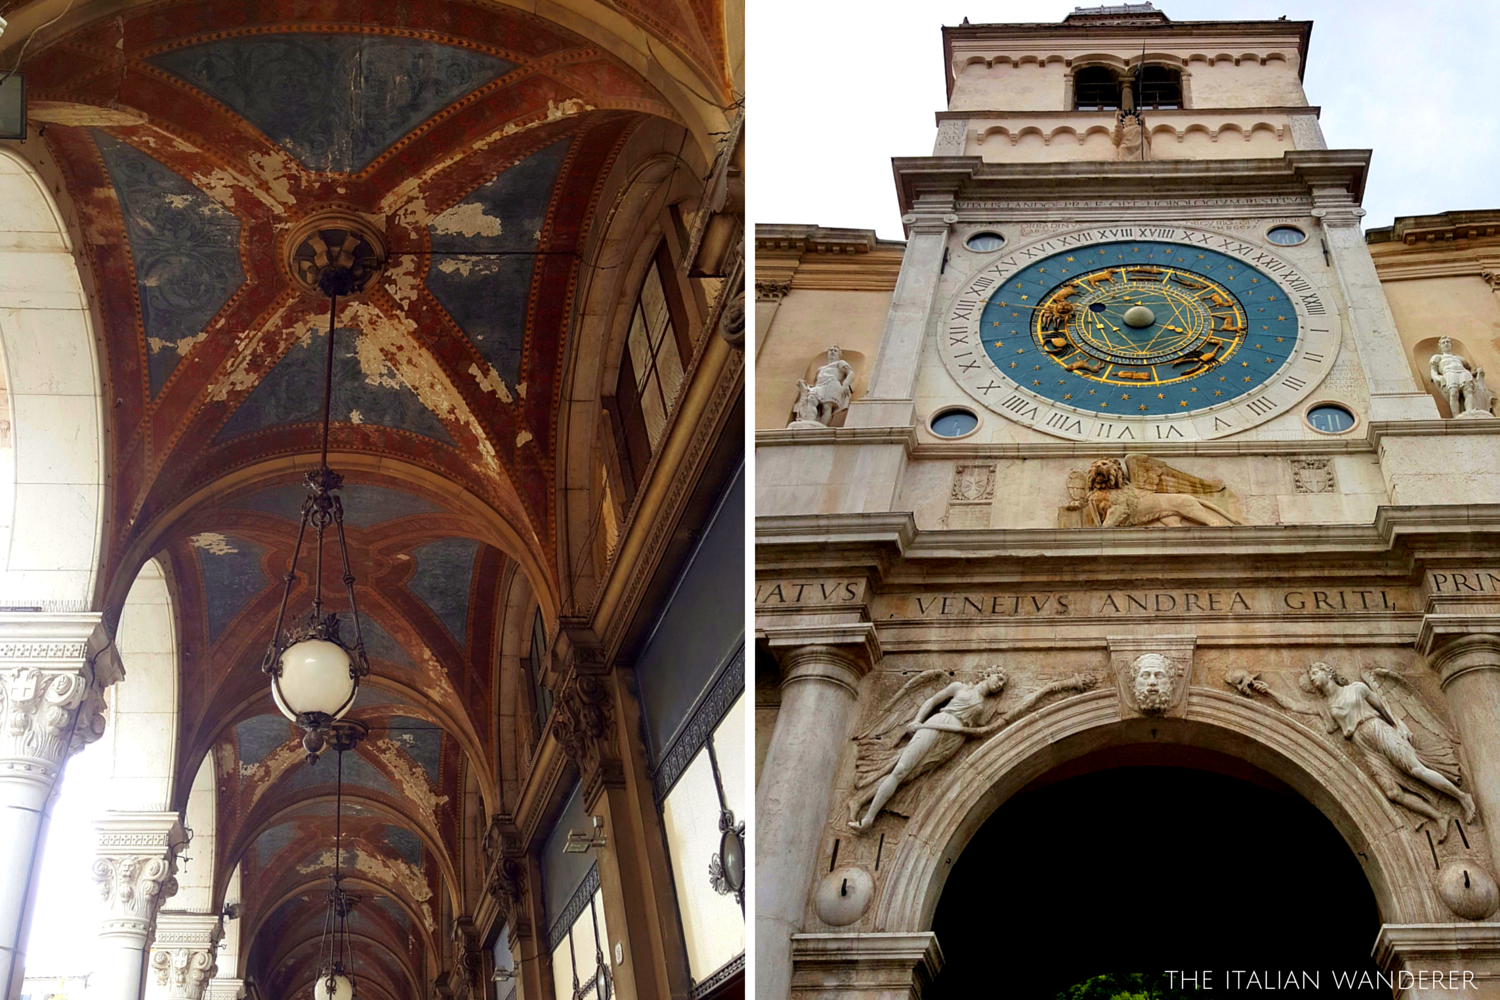 The Astronomic Clock Tower in Padua and some random painted colonnade